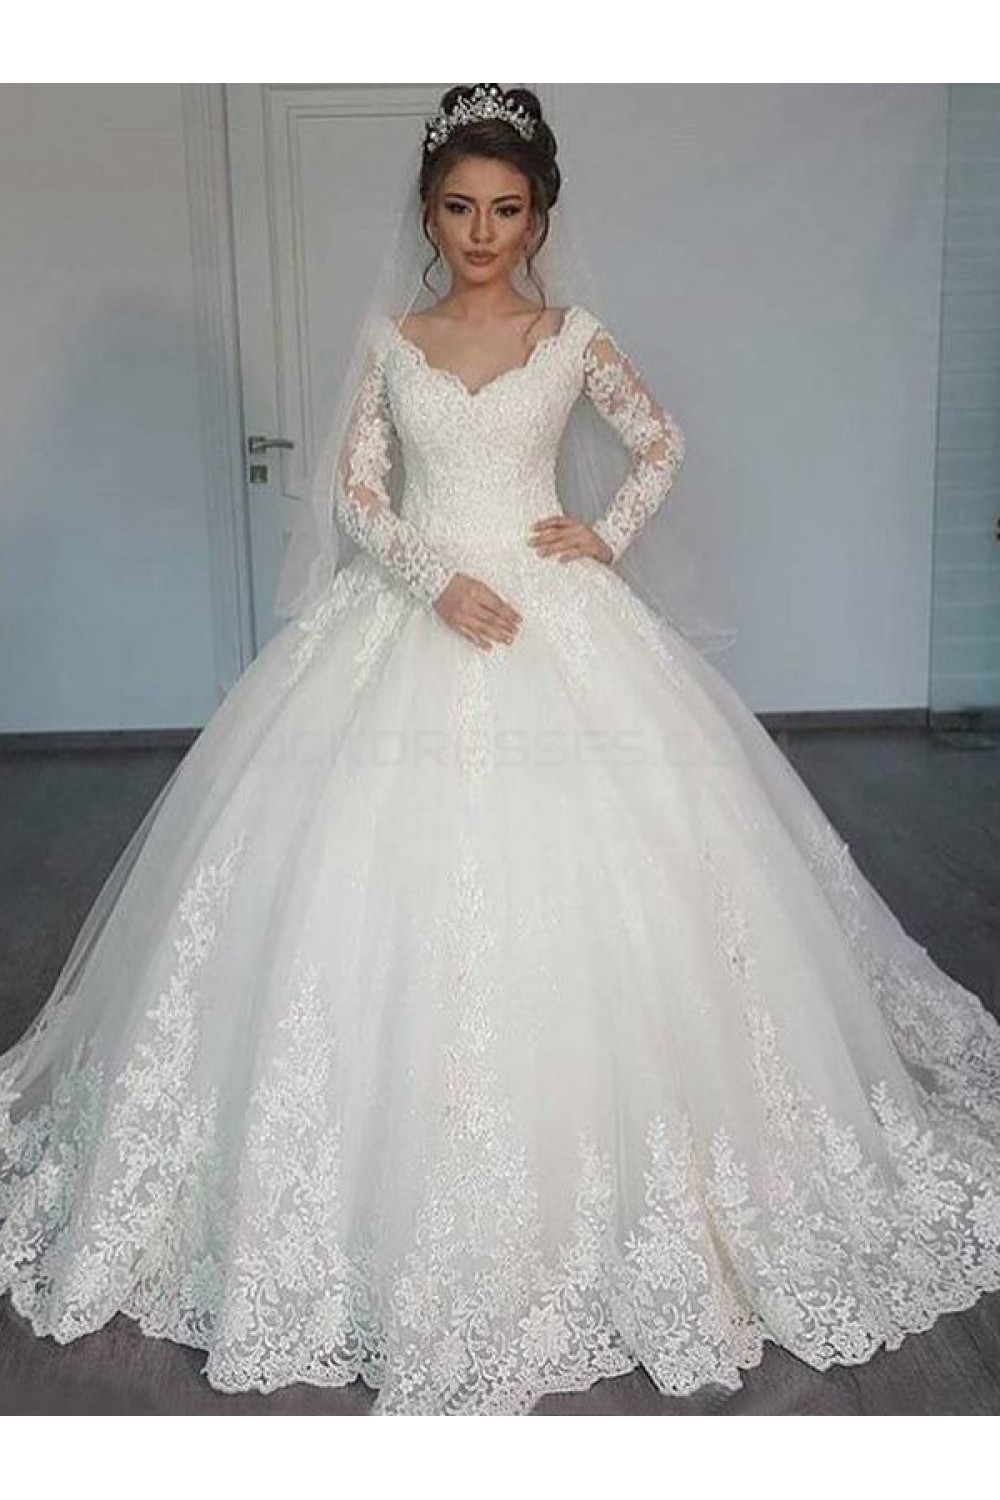 dresses with sleeves for wedding bridal gown v neck lace sleeves wedding dresses 3747